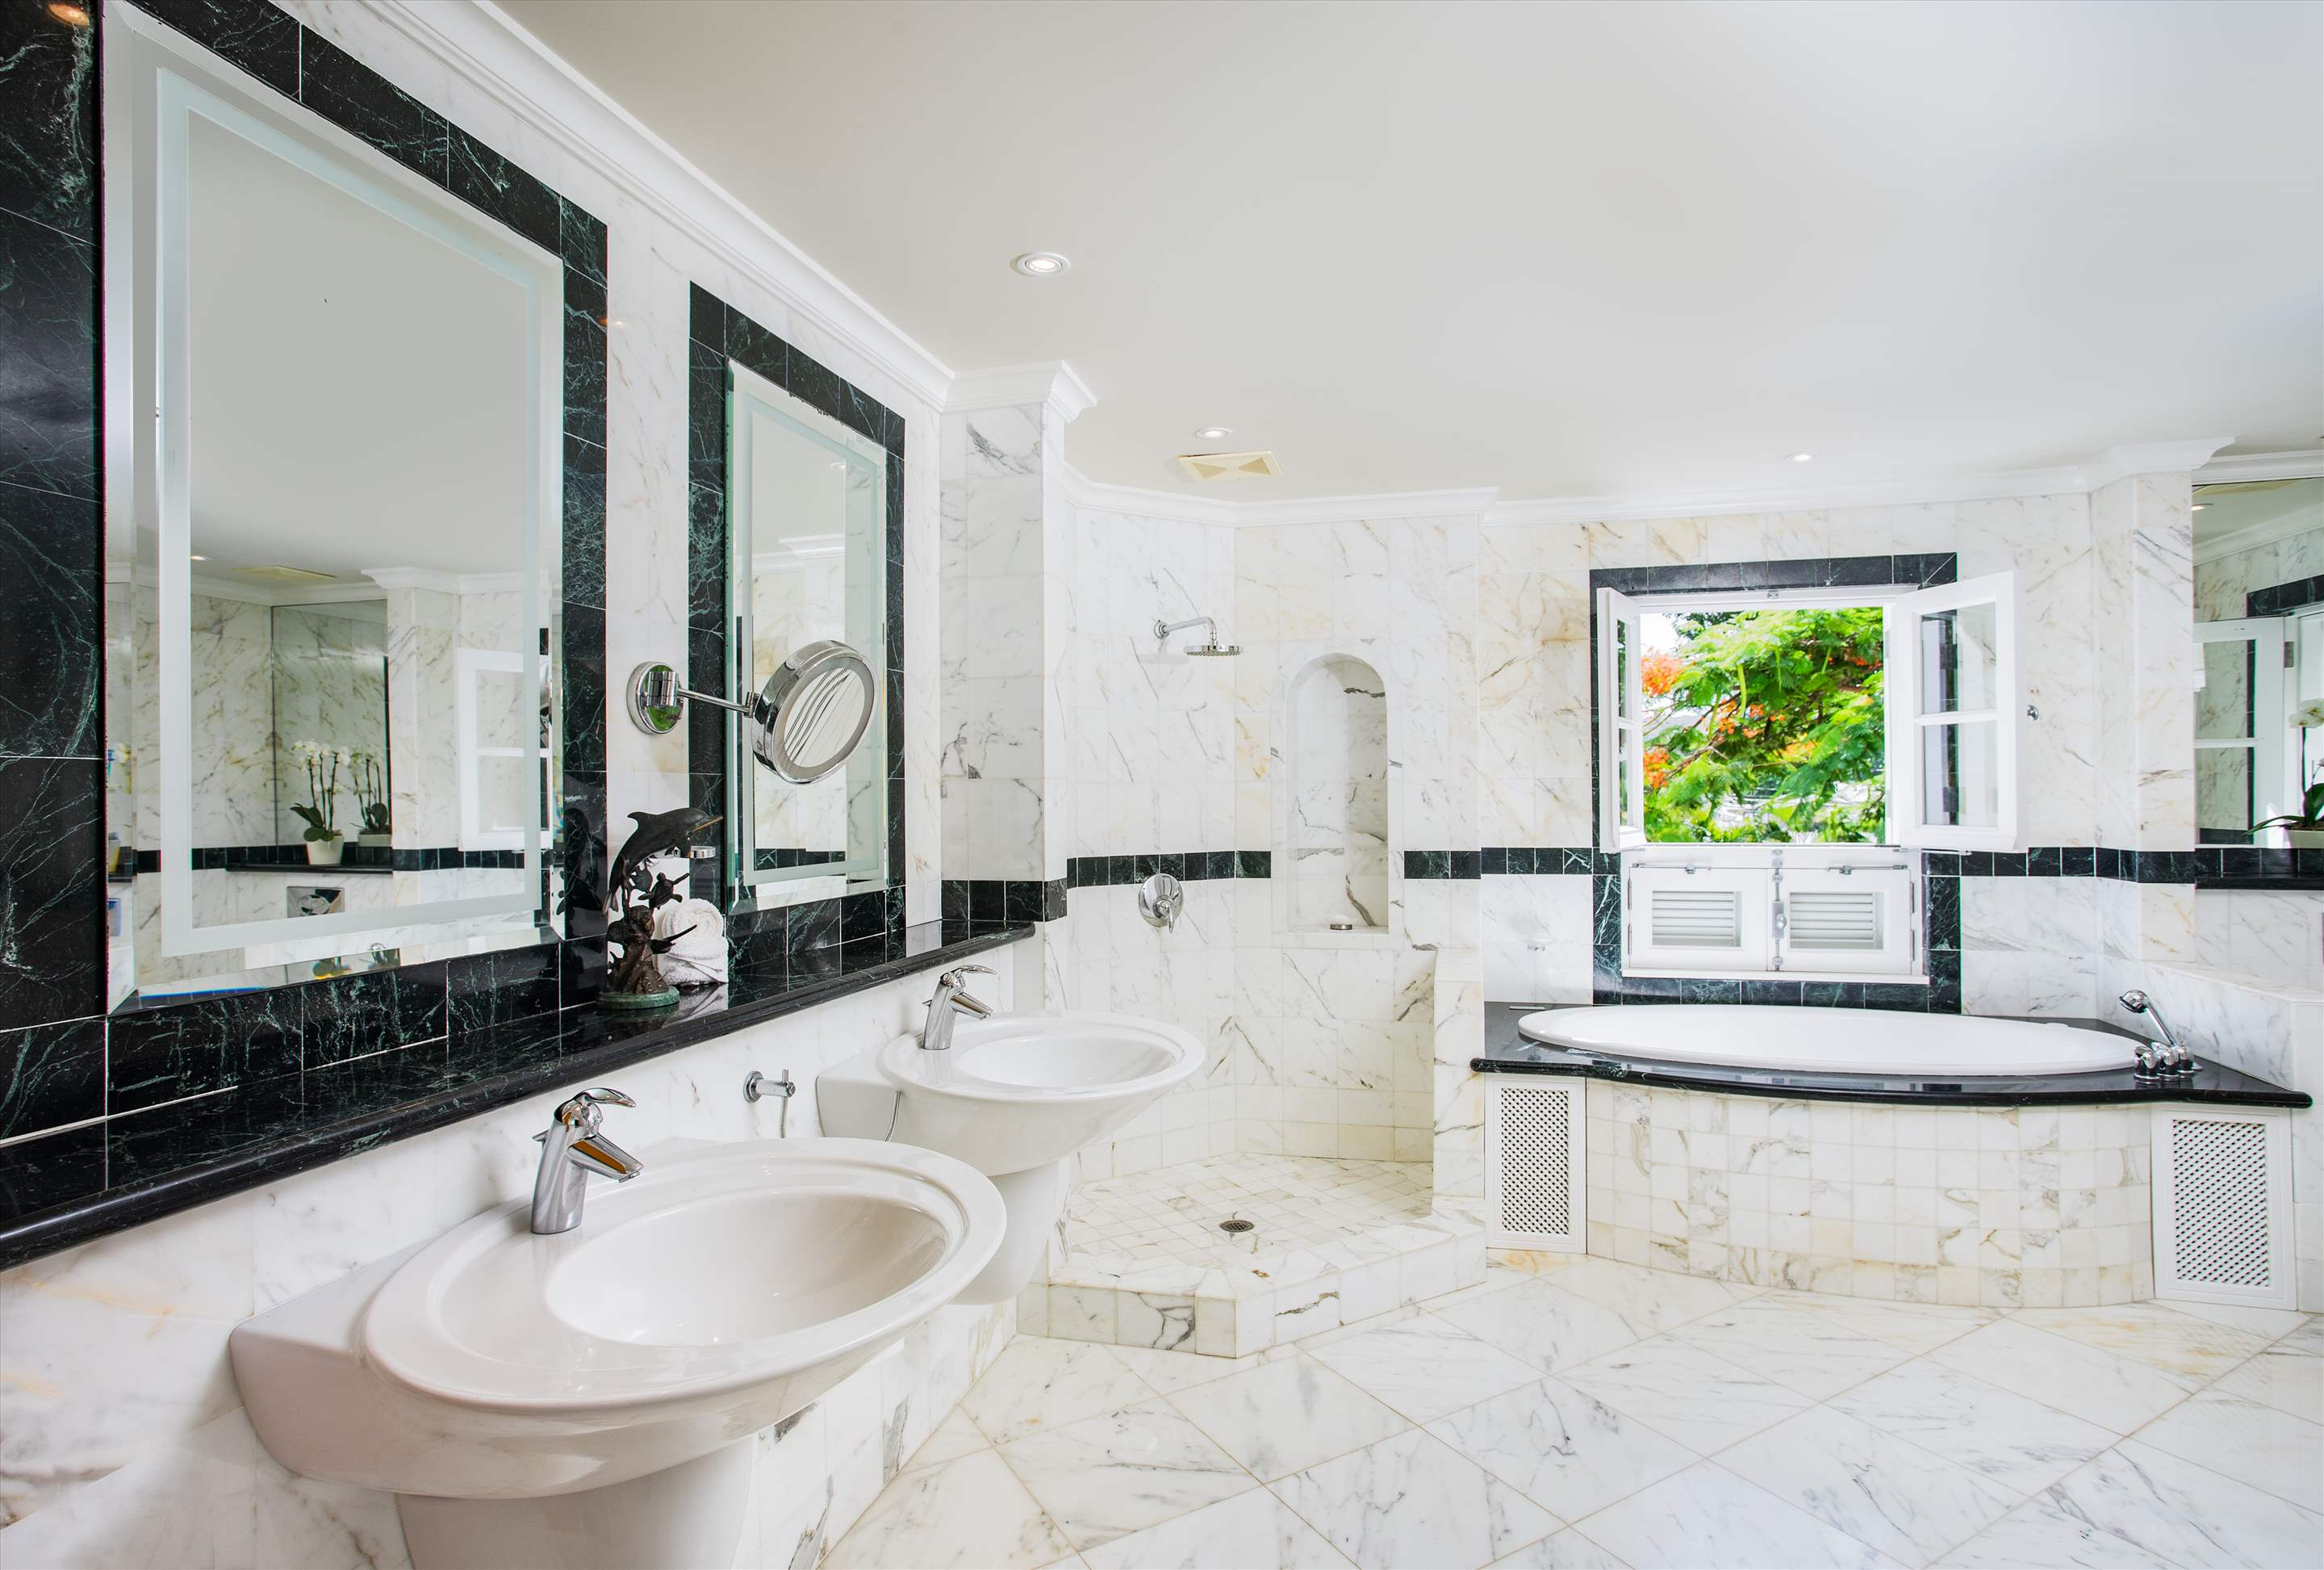 Schooner Bay 205, Two Bedroom rate, 2 bedroom apartment in St. James & West Coast, Barbados Photo #10